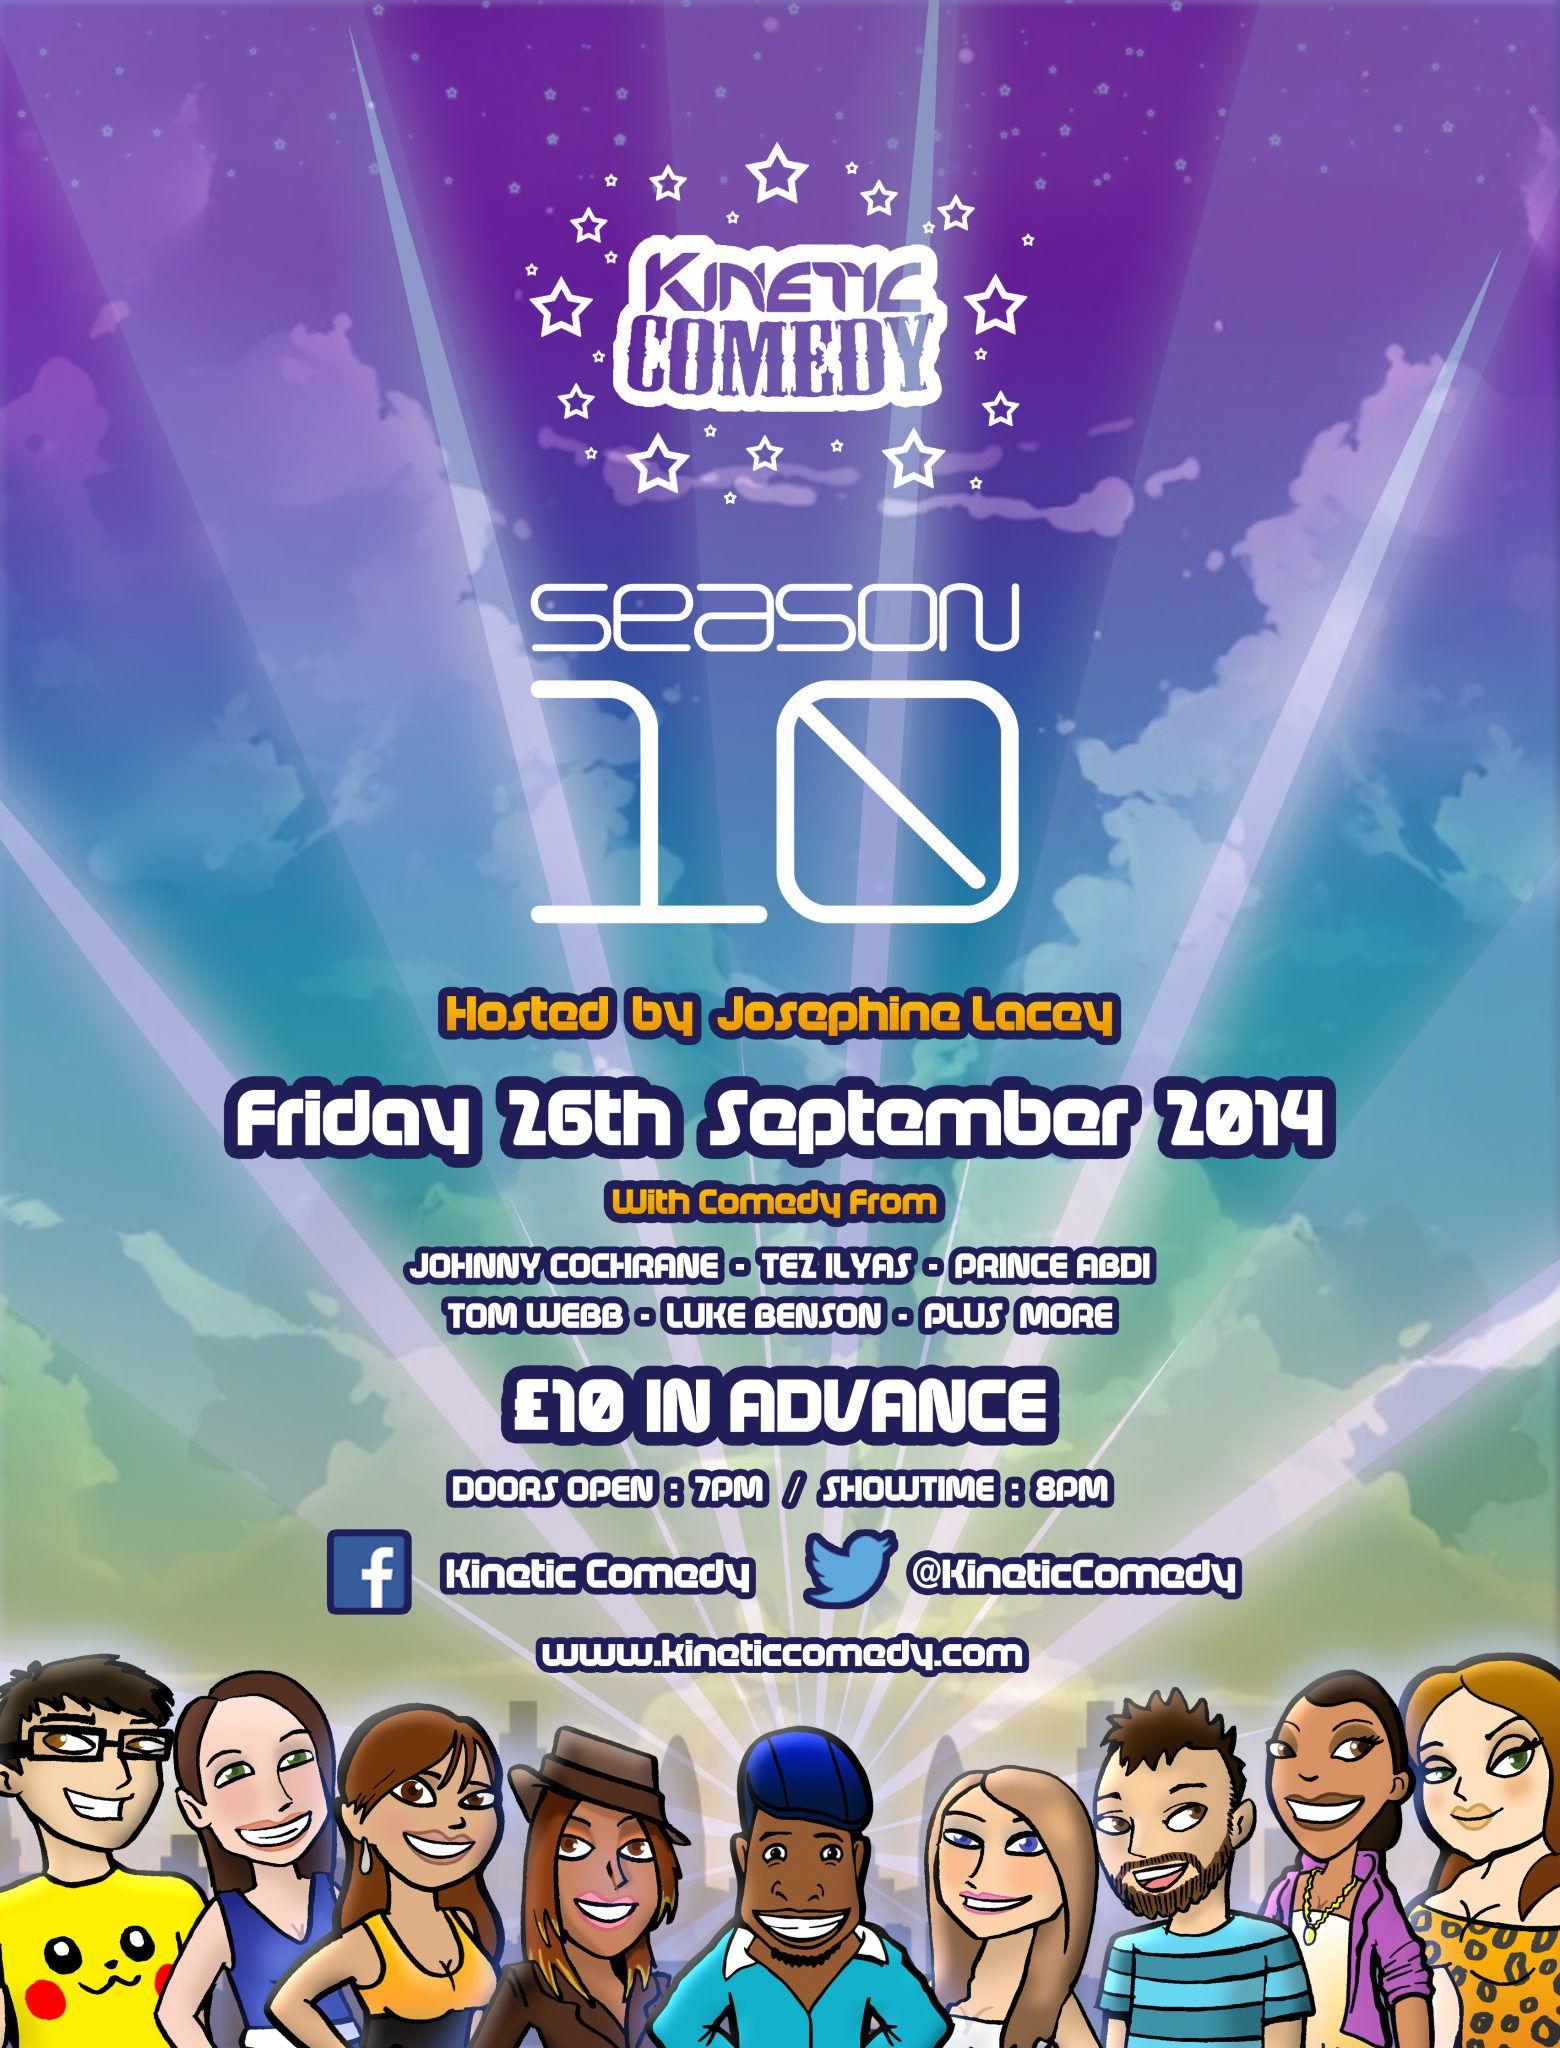 Kinetic Comedy 10.3 – Friday 26th September 2014 – Hosted By Josephine Lacey